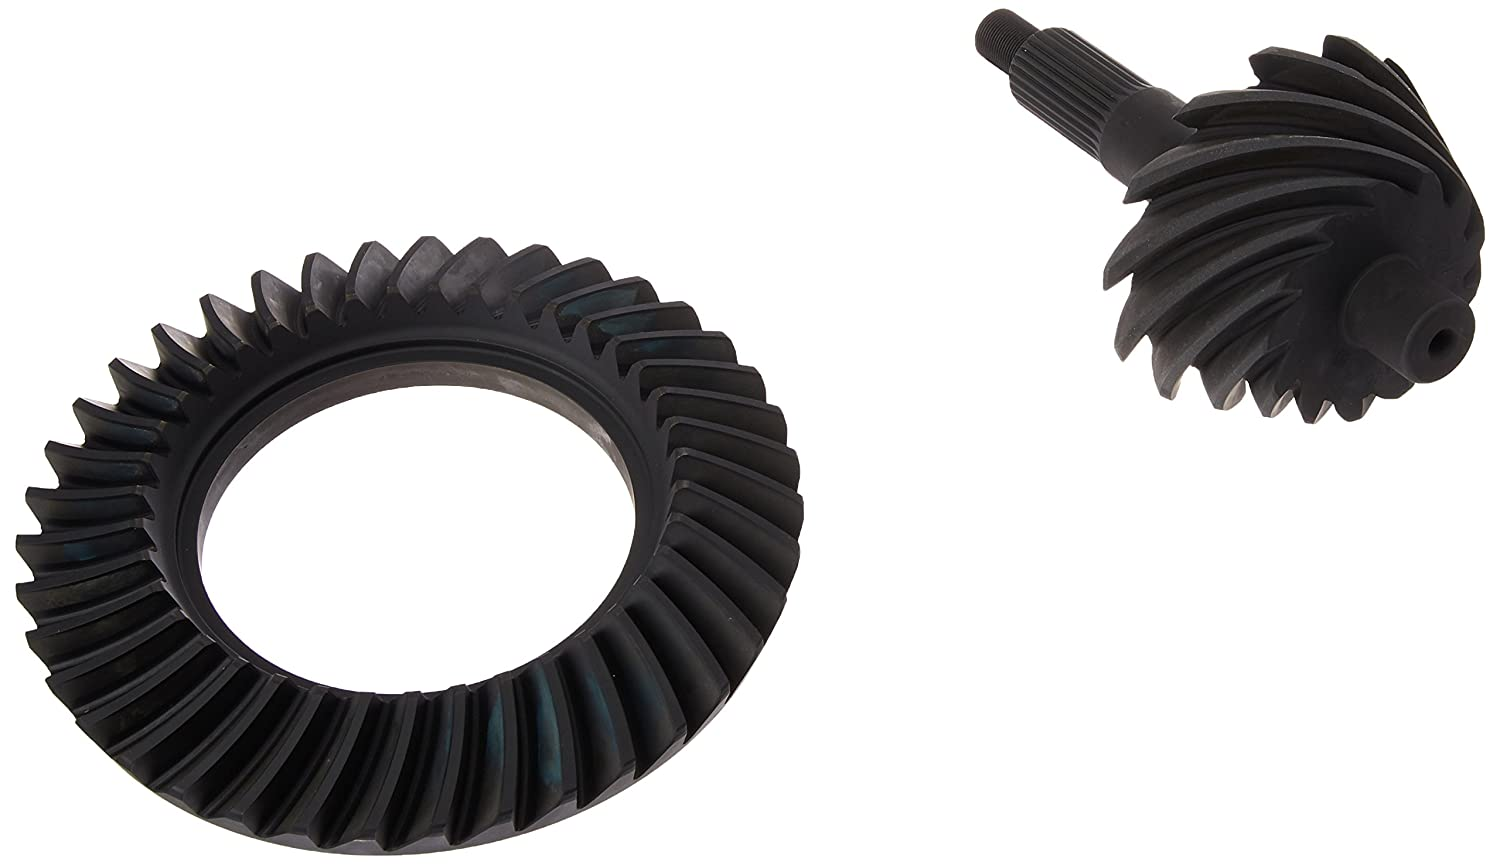 Motive Gear F9-486 Ring and Pinion Ford 9 Style, 4.86 Ratio